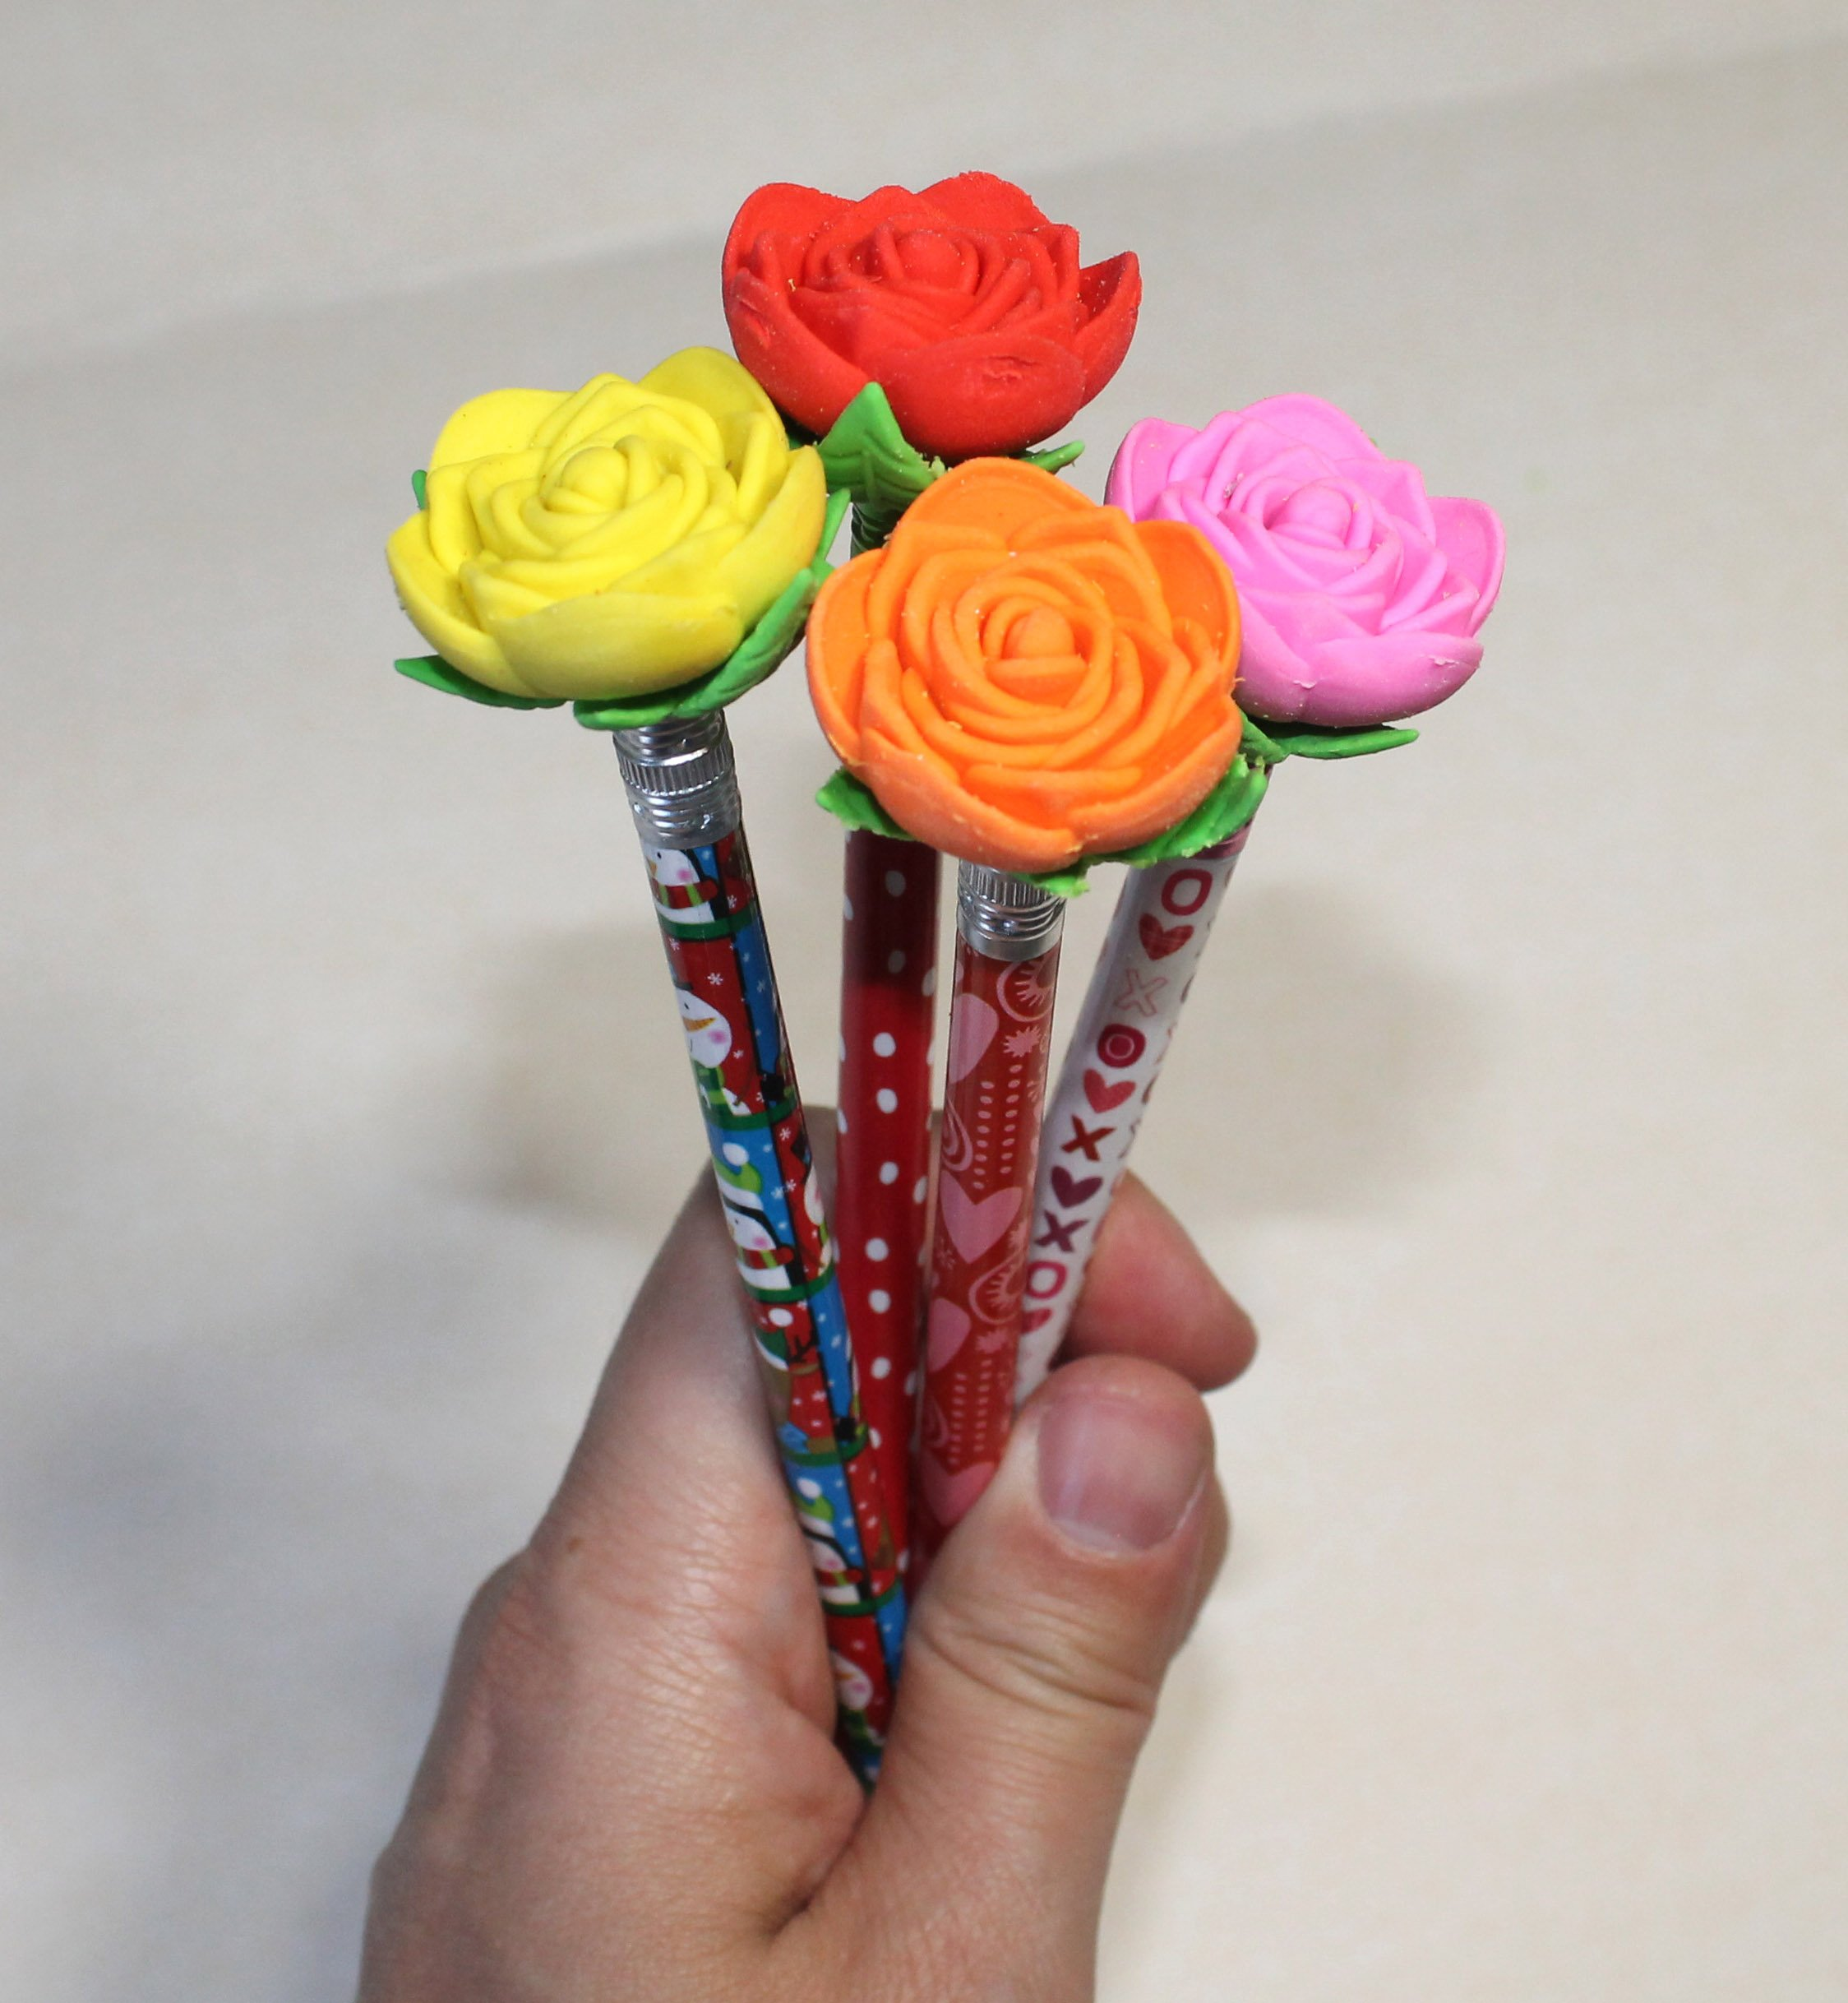 Lucore Rose Pencil Top Erasers - 16 pcs Colorful Flower Shaped Kids Pen Cap Toppers by Lucore Home (Image #4)